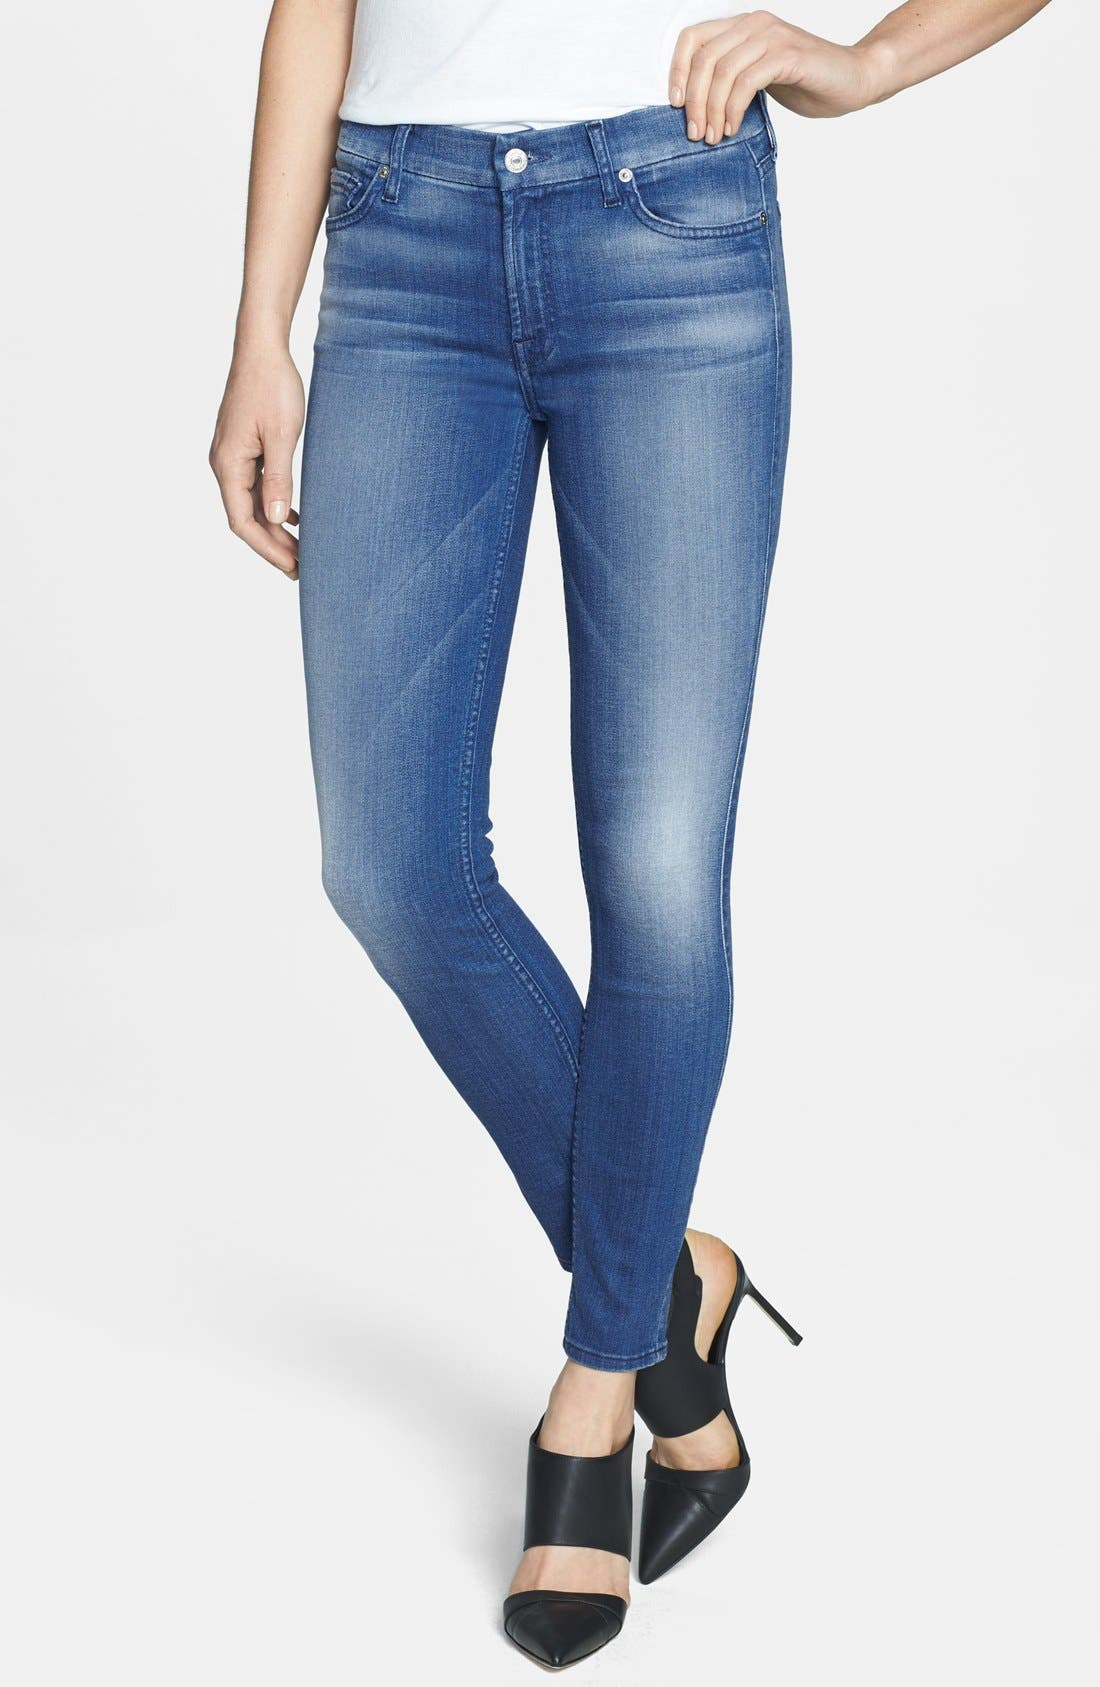 Main Image - 7 For All Mankind® 'The Ankle' Skinny Jeans (Slim Illusion Bright Blue)